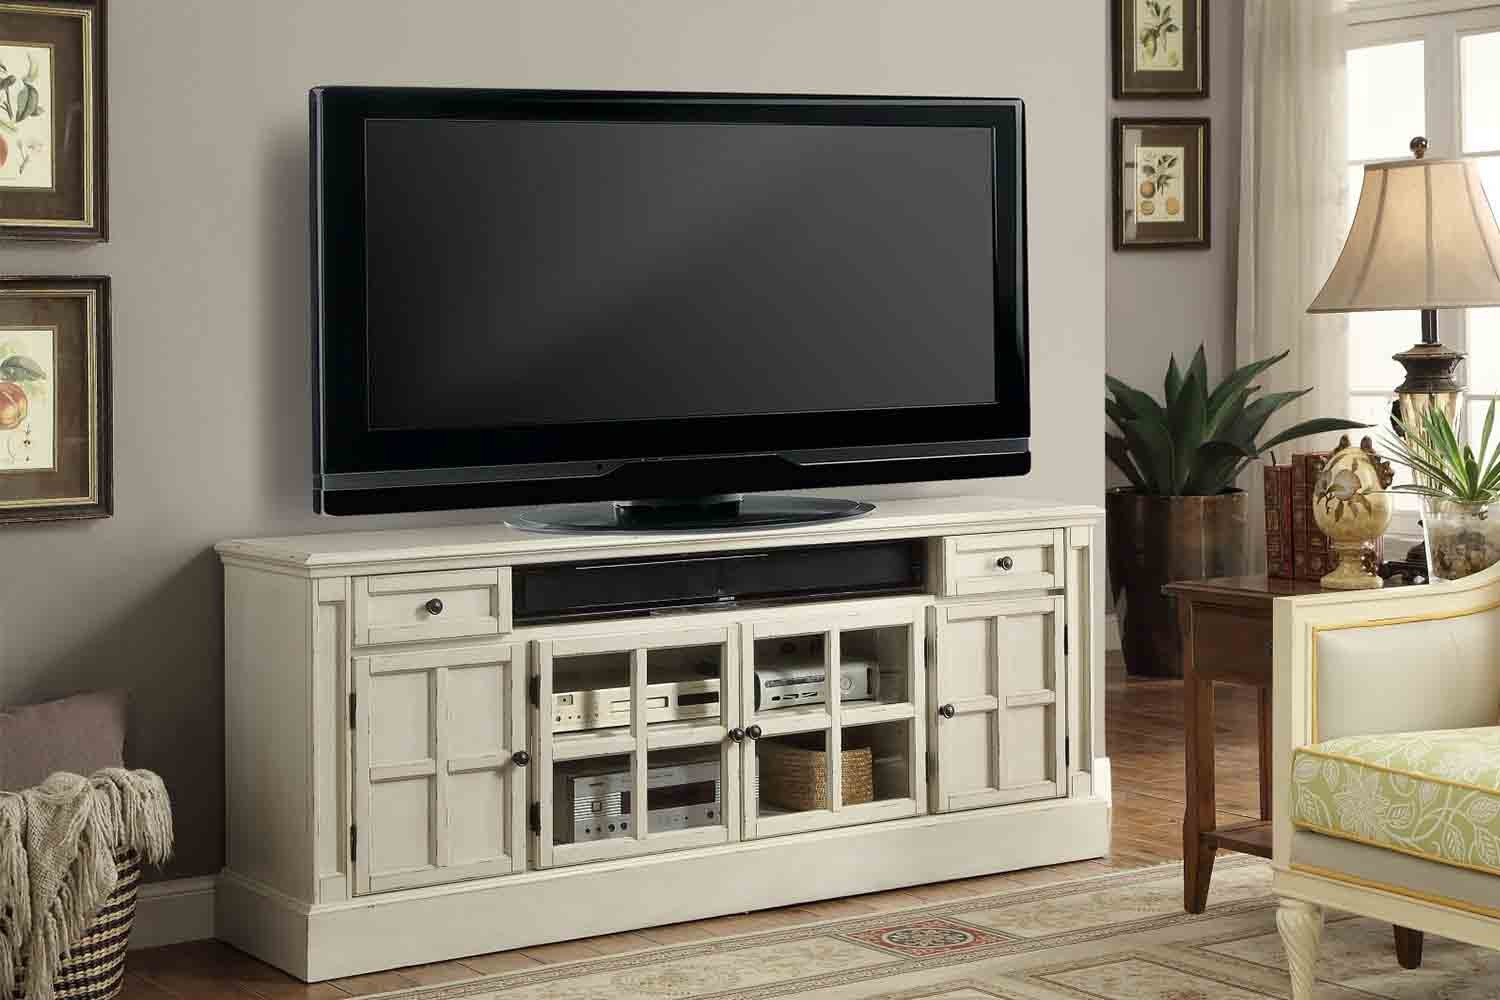 gone go beyond tv rooms area room obvious units the wall unit modern designs storage to console and